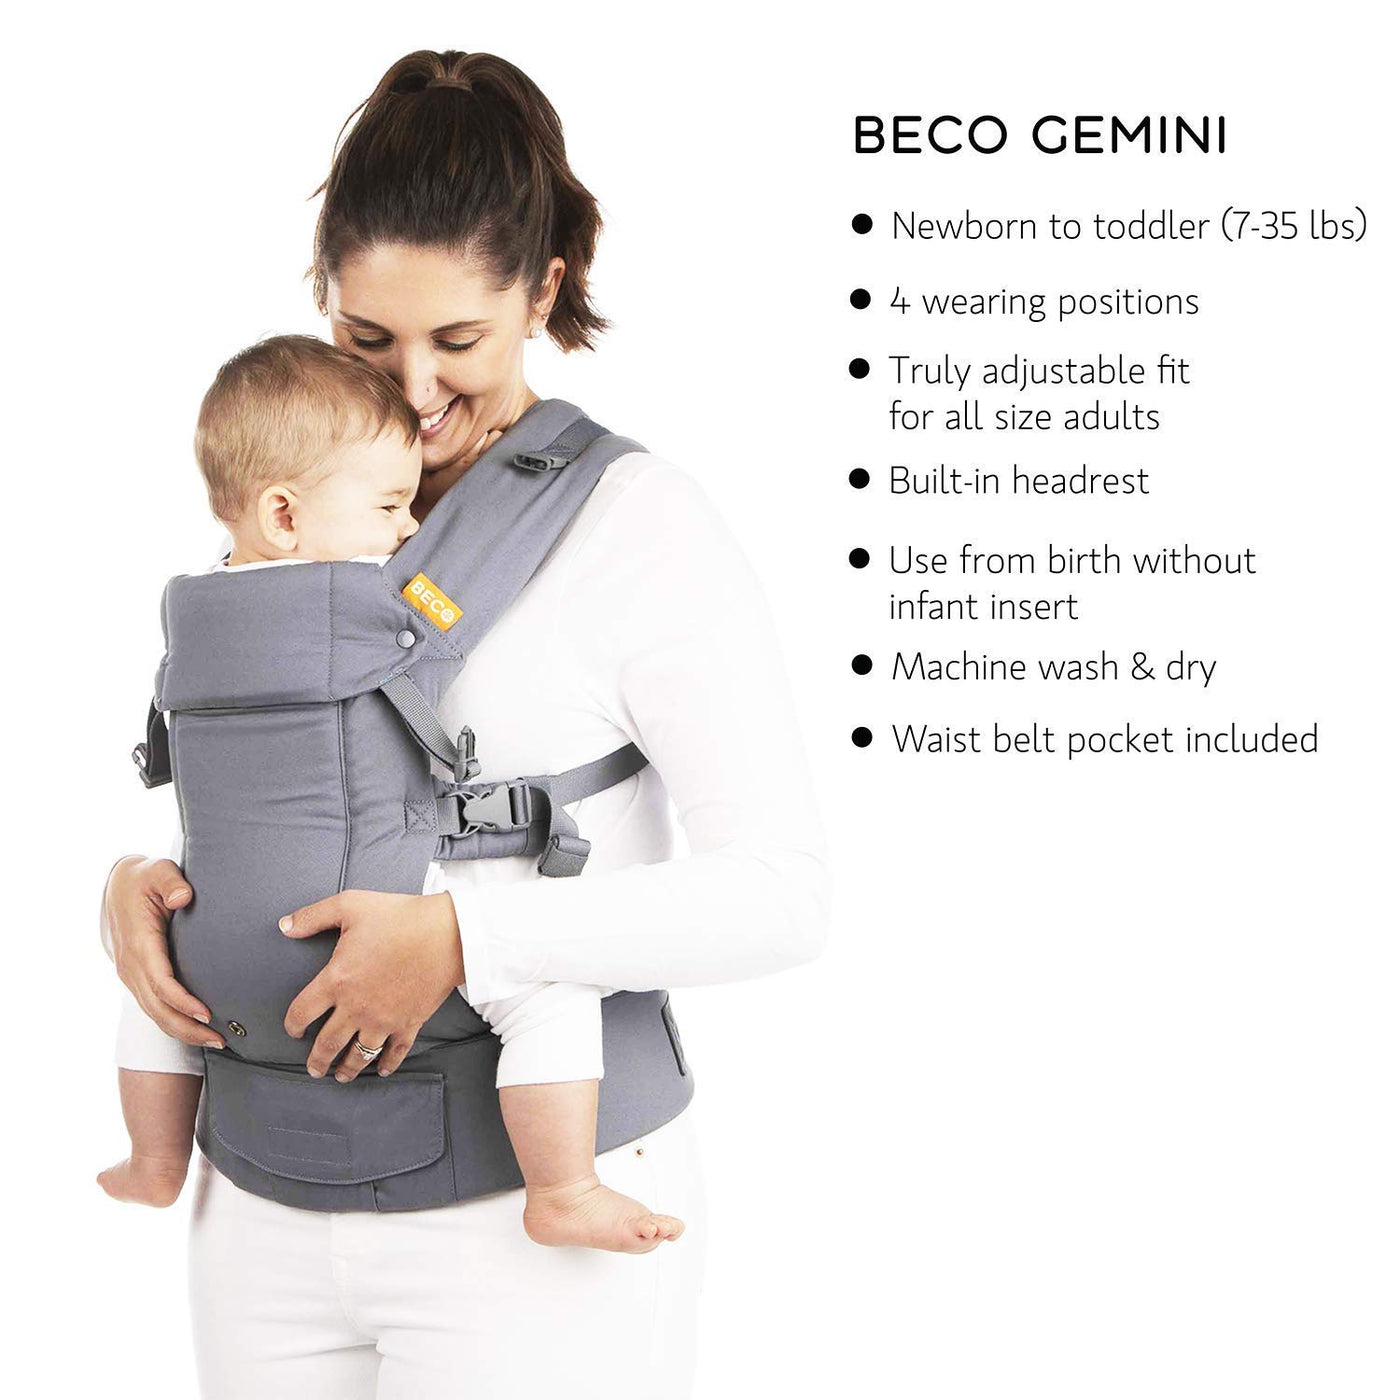 used beco gemini for sale